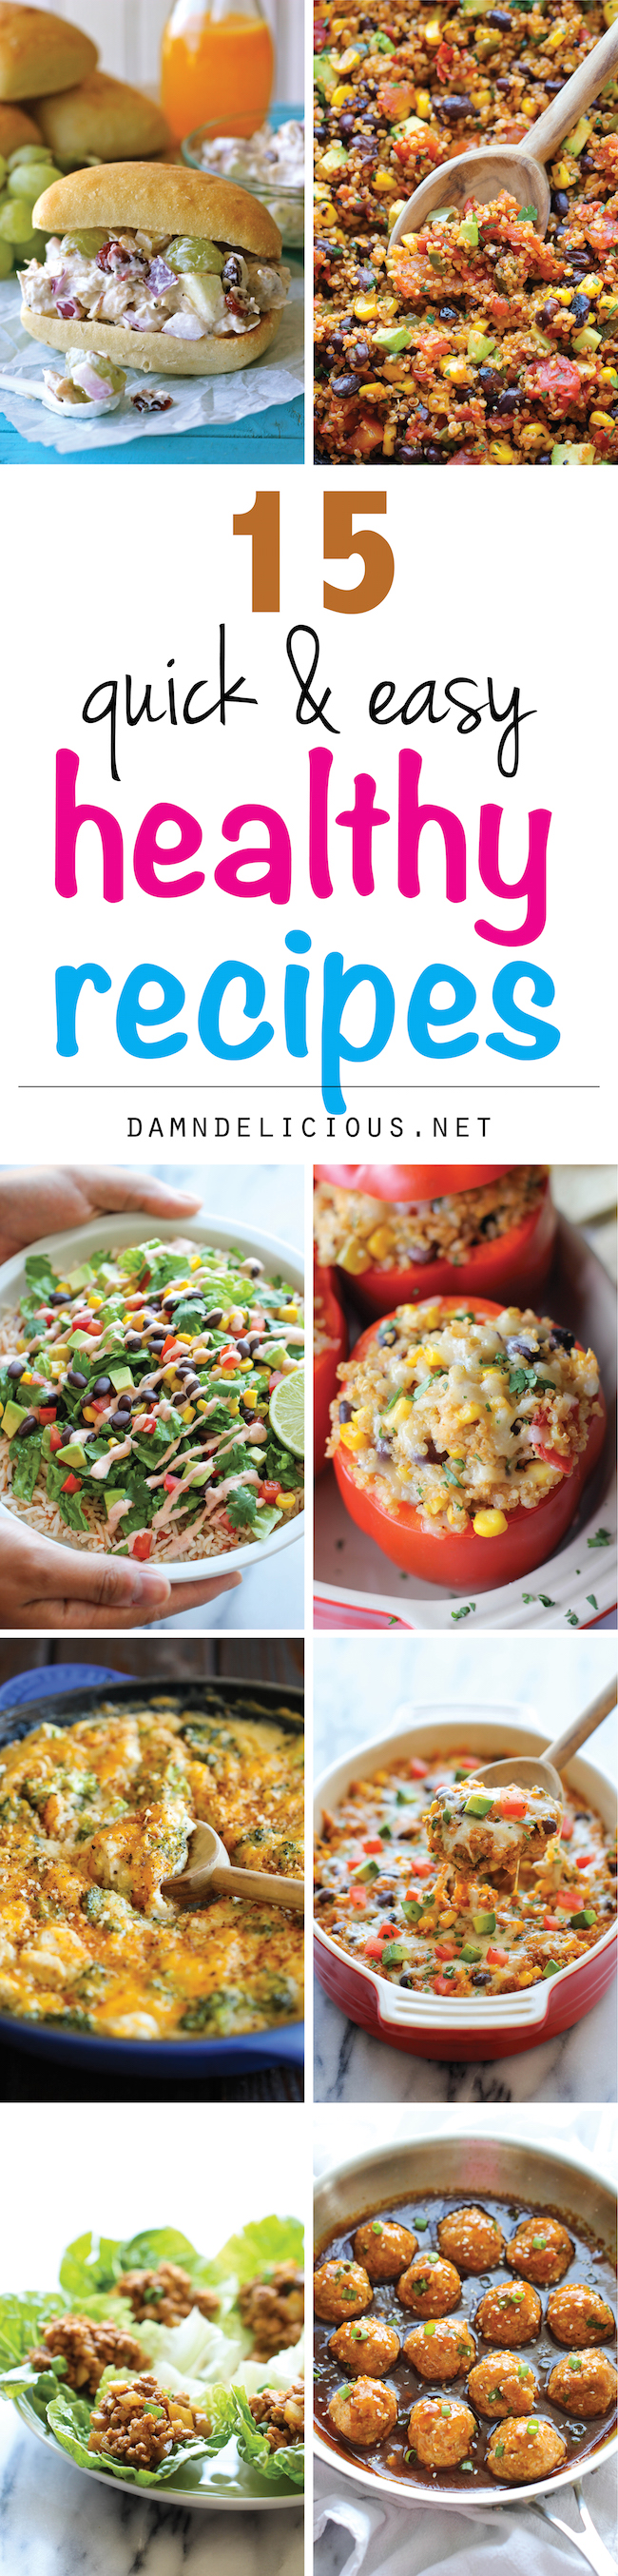 15 quick and easy healthy recipes - damn delicious